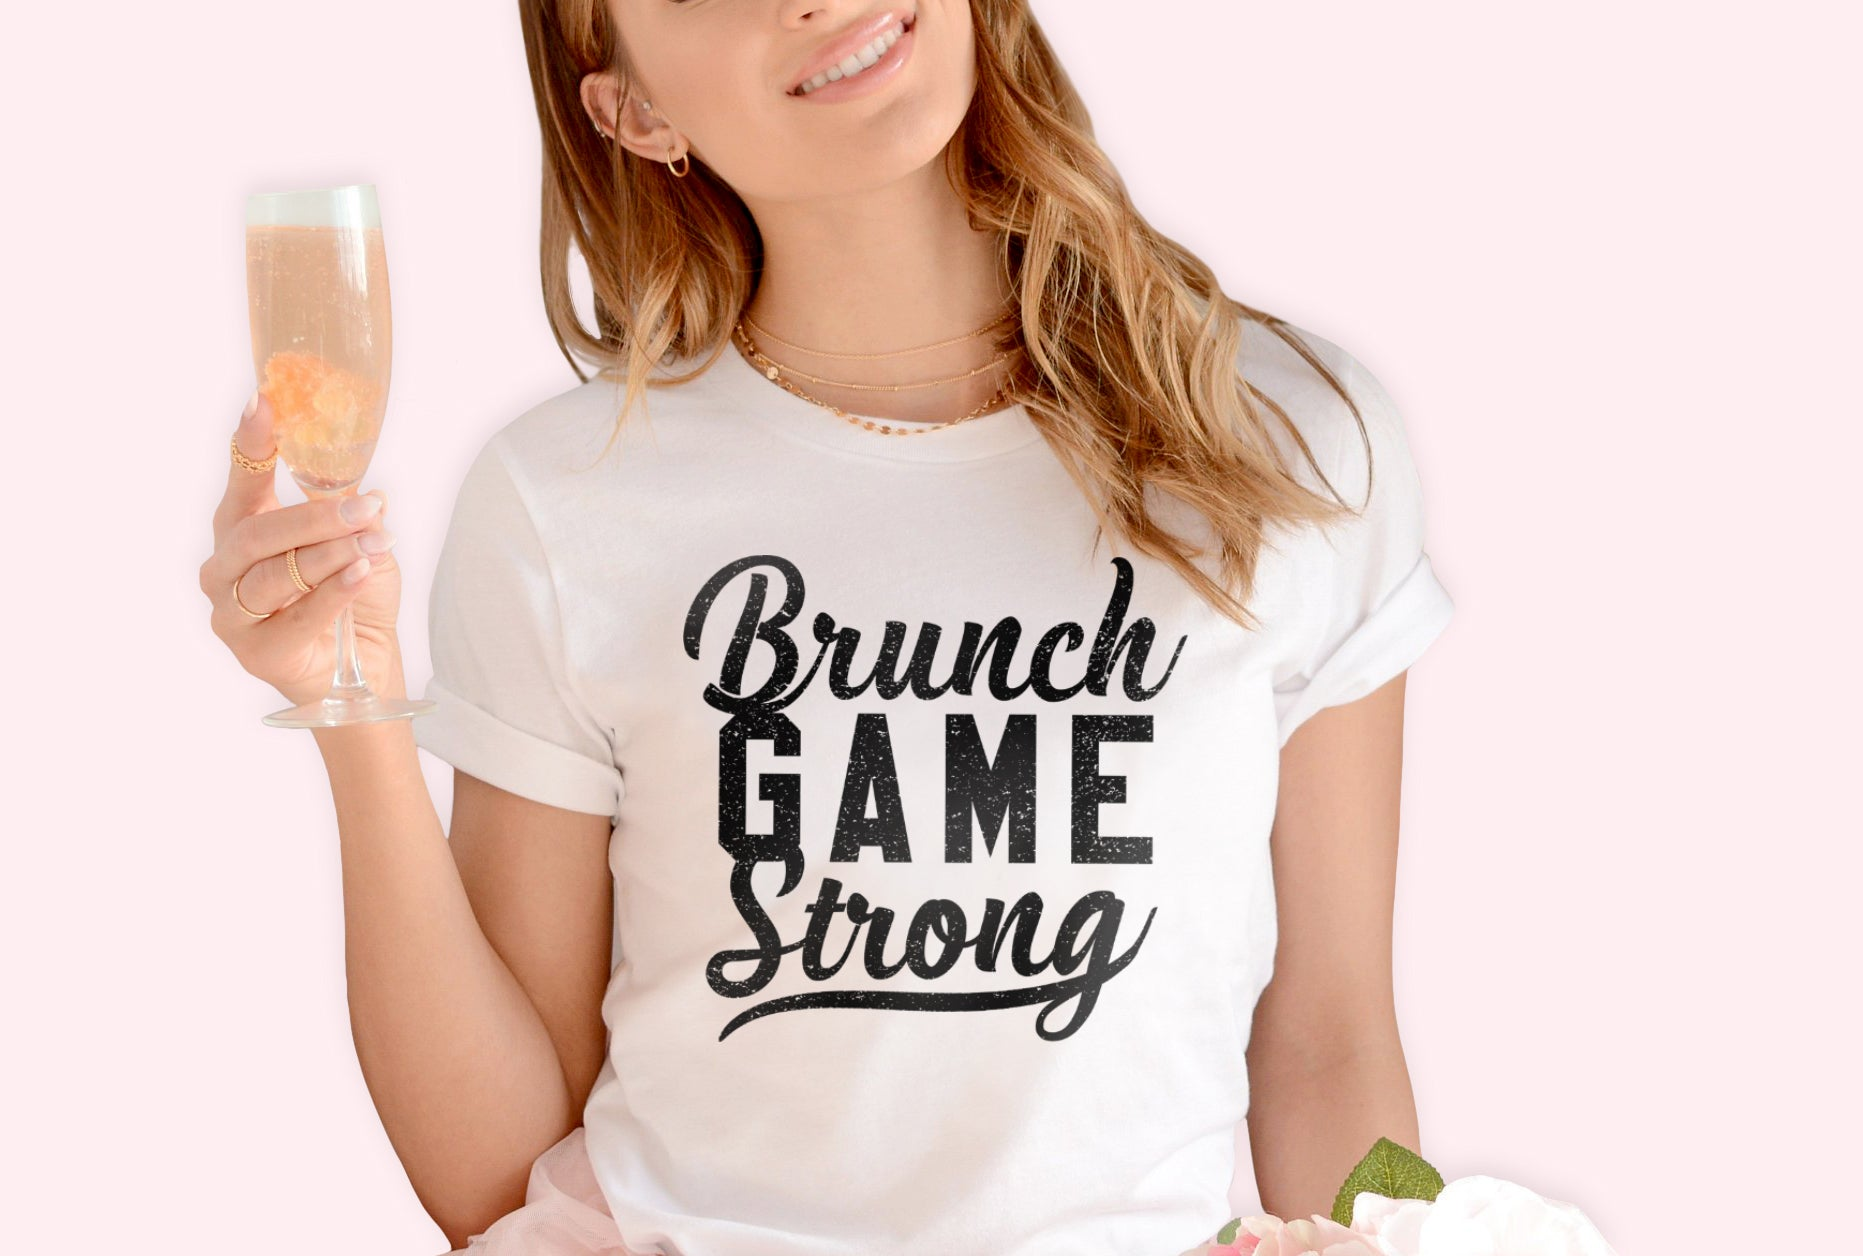 Brunch Game Strong Shirt